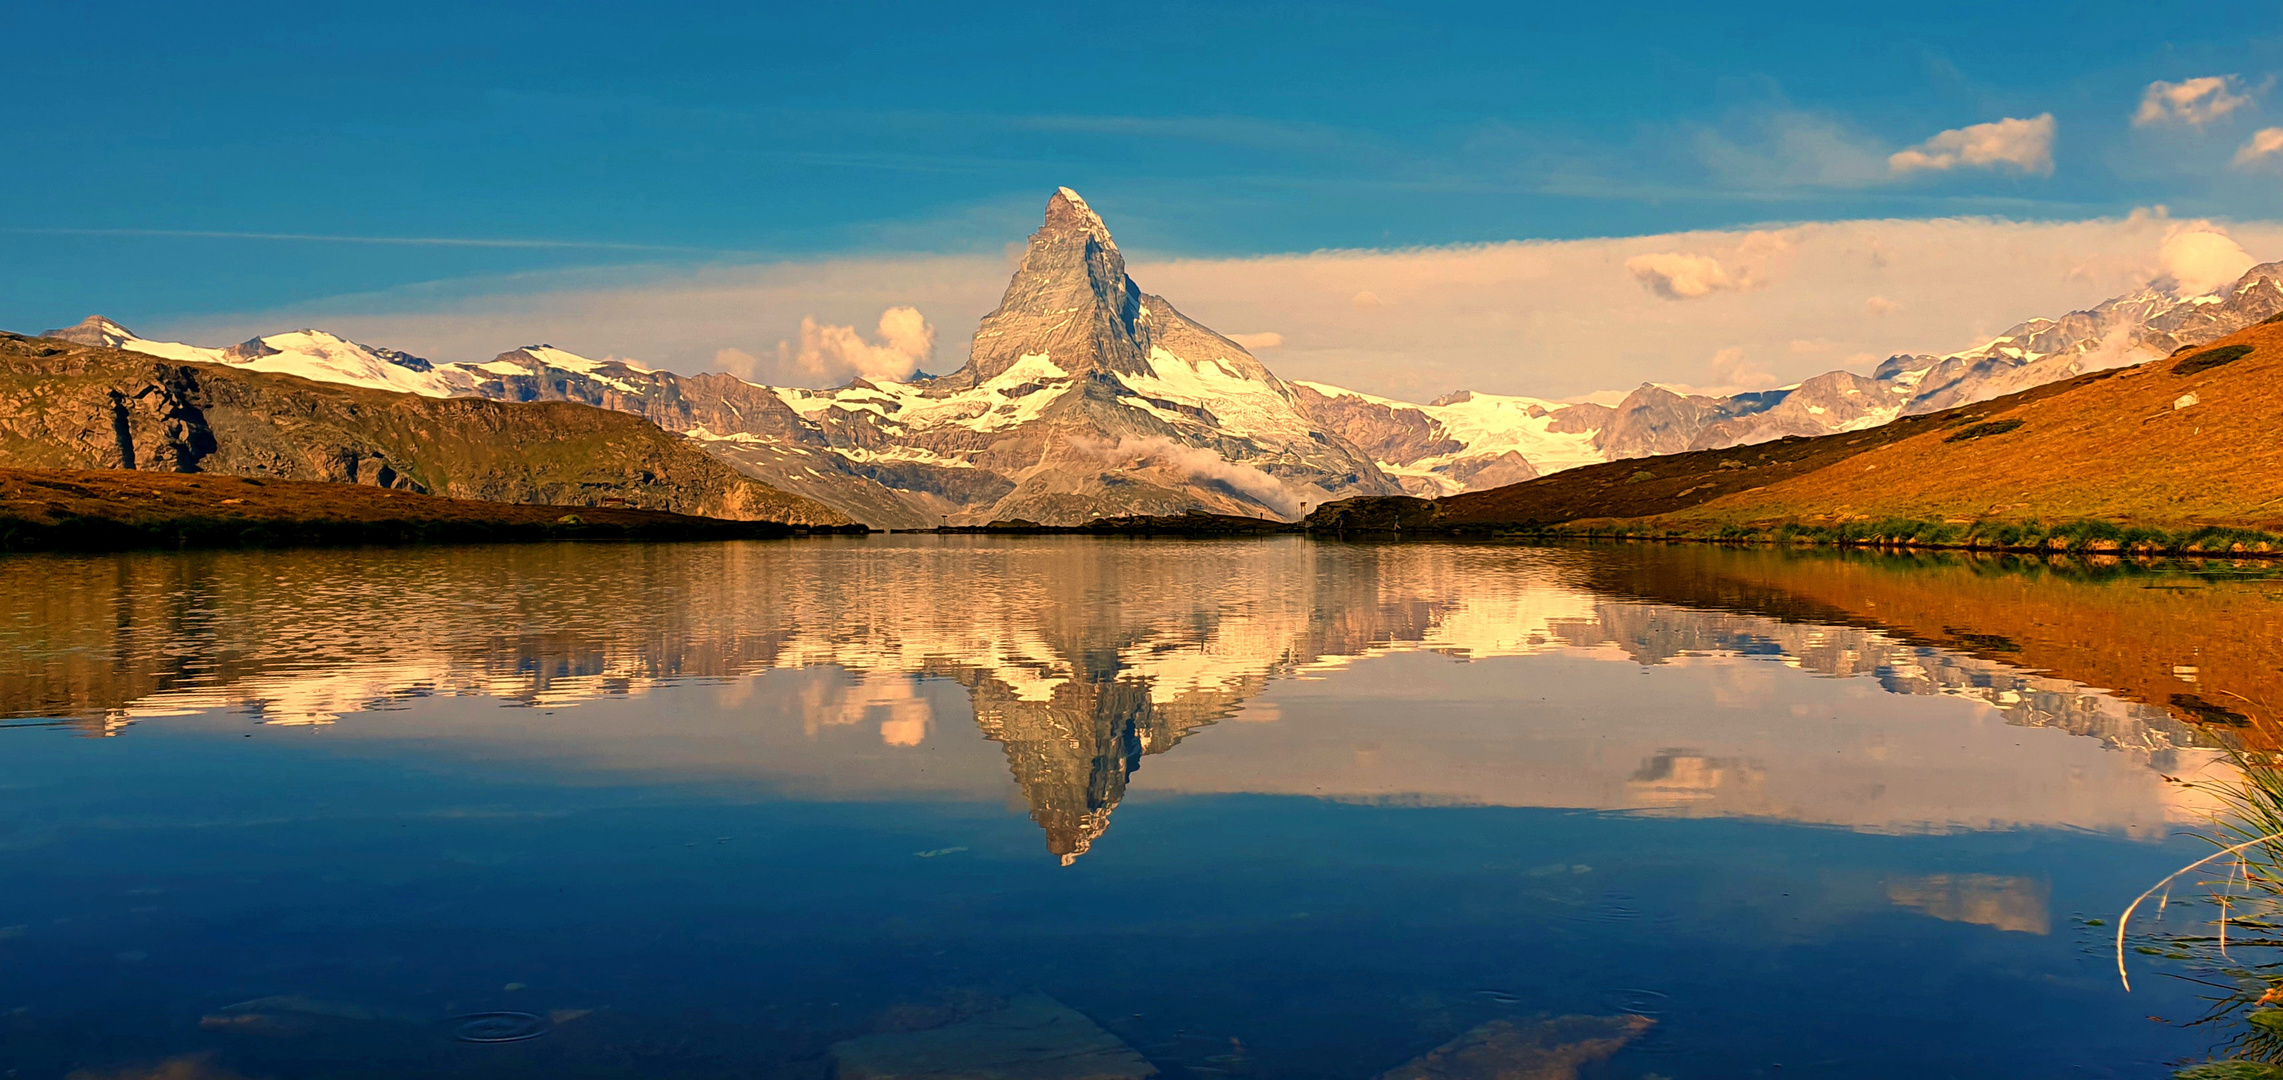 Matterhorn on Sunrise